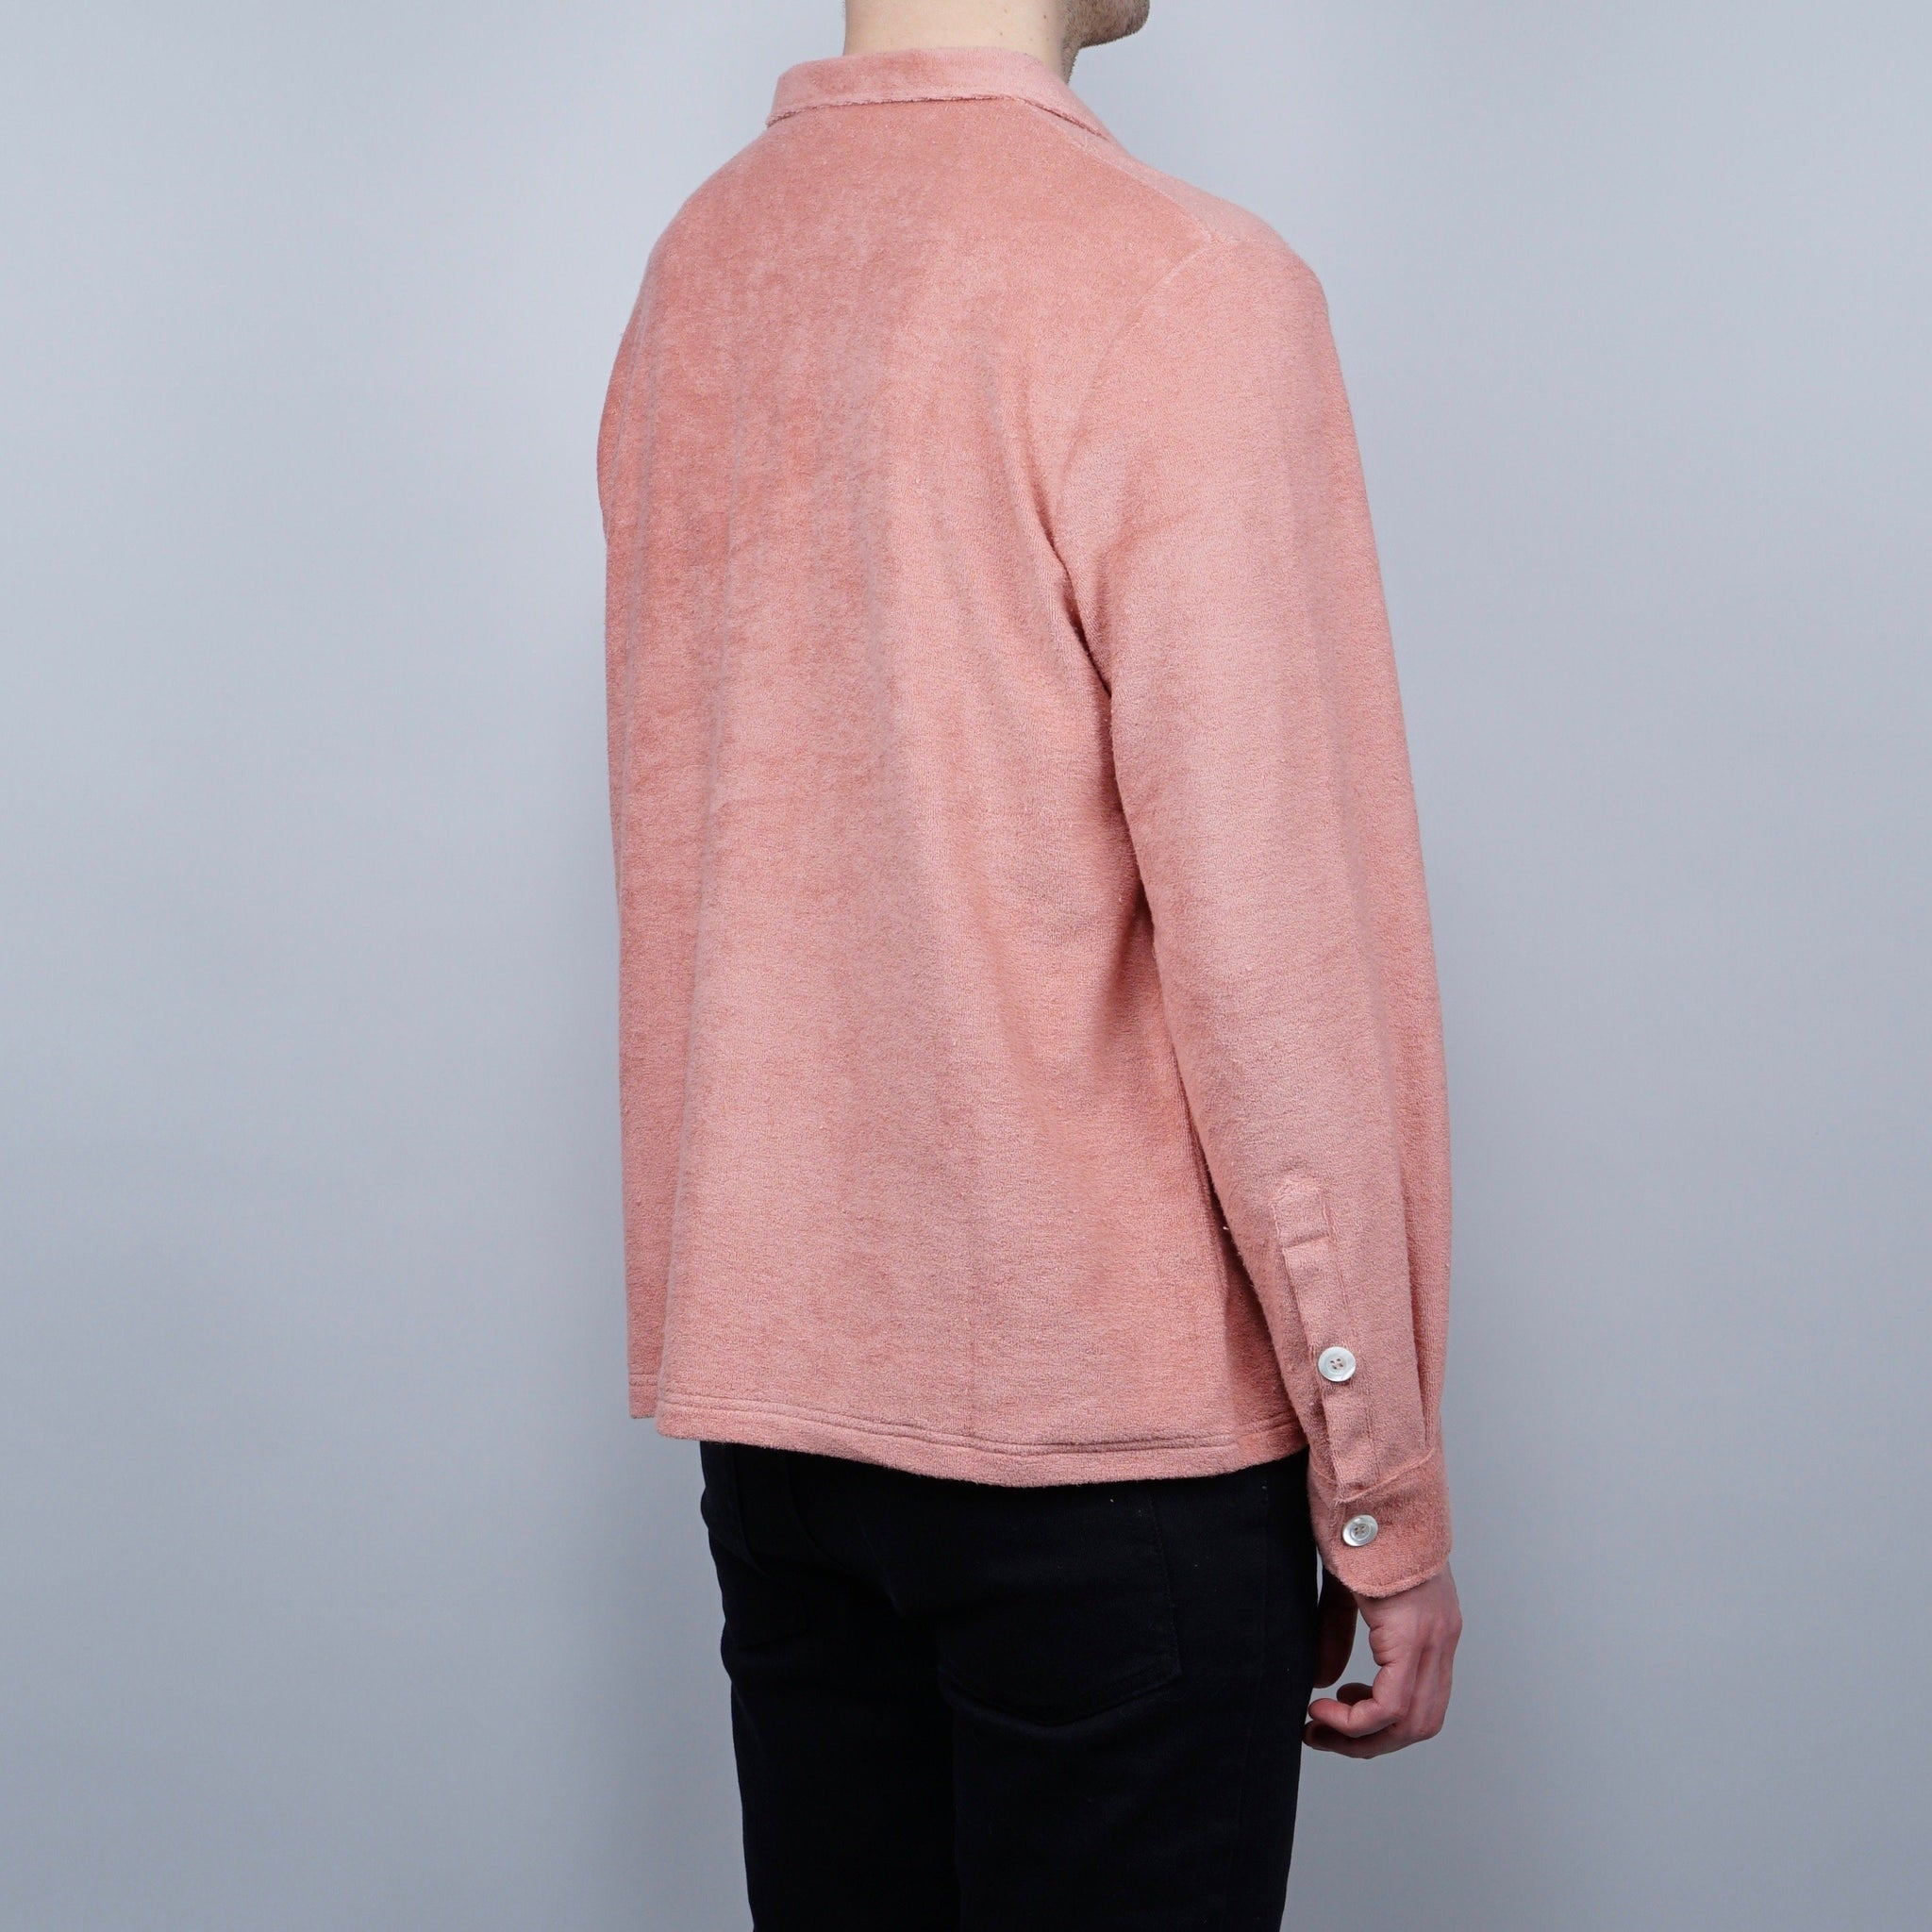 Séfr Séfr Resort Top Rose Shirt